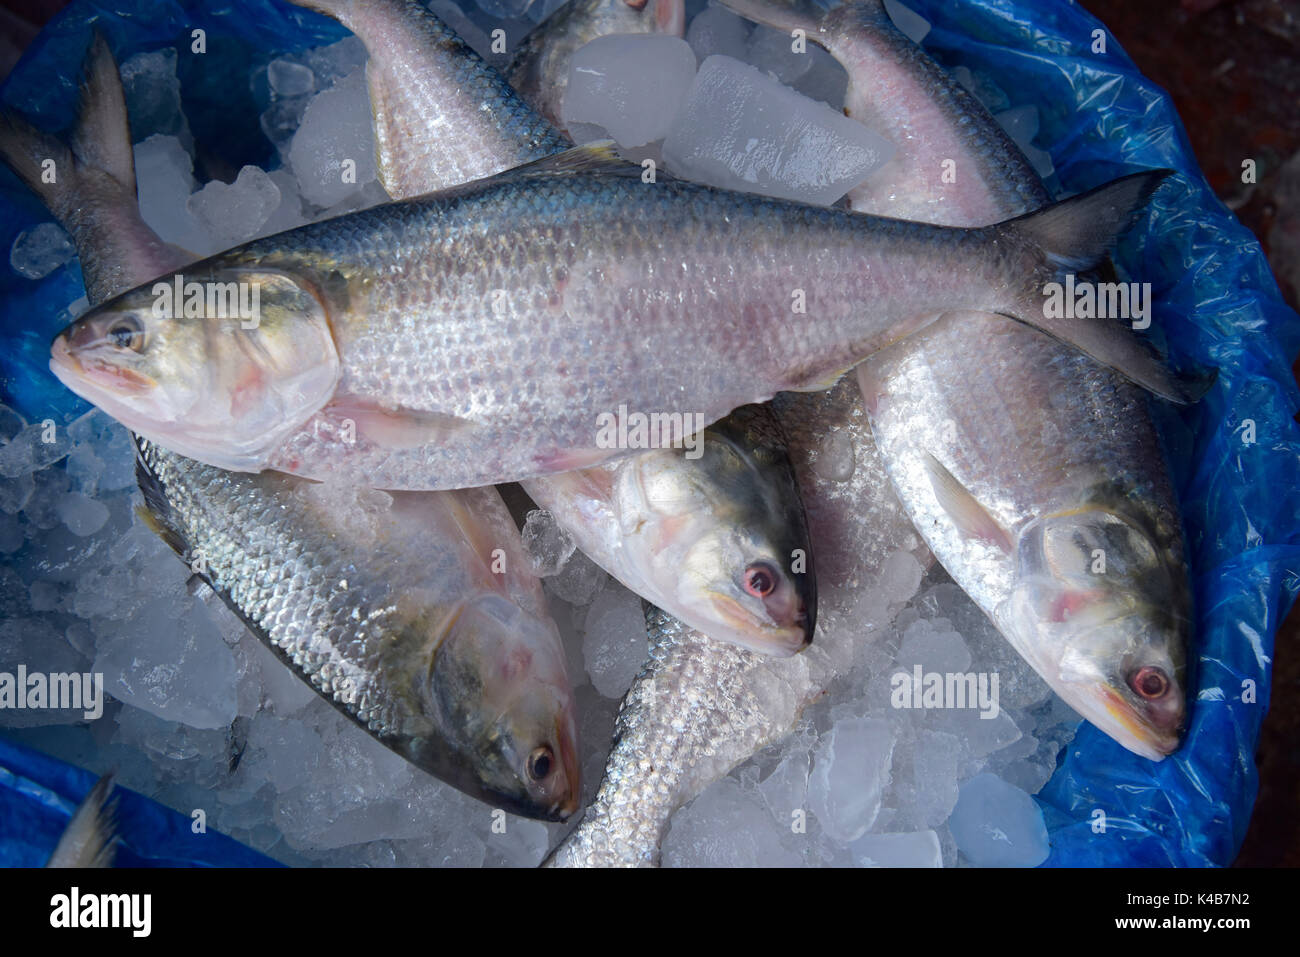 DHAKA, BANGLADESH – SEPTEMBER 05, 2017: Bangladeshi traders put Ilisha fish on display to sell at a market in Dhaka, Bangladesh, September 05, 2017. The fish contributes about 12% of the total fish production and about 1% of GDP in Bangladesh. About 450,000 people are directly involved with the catching for livelihood; around four to five million people are indirectly involved with the trade. It is also the national fish of Bangladesh. - Stock Image